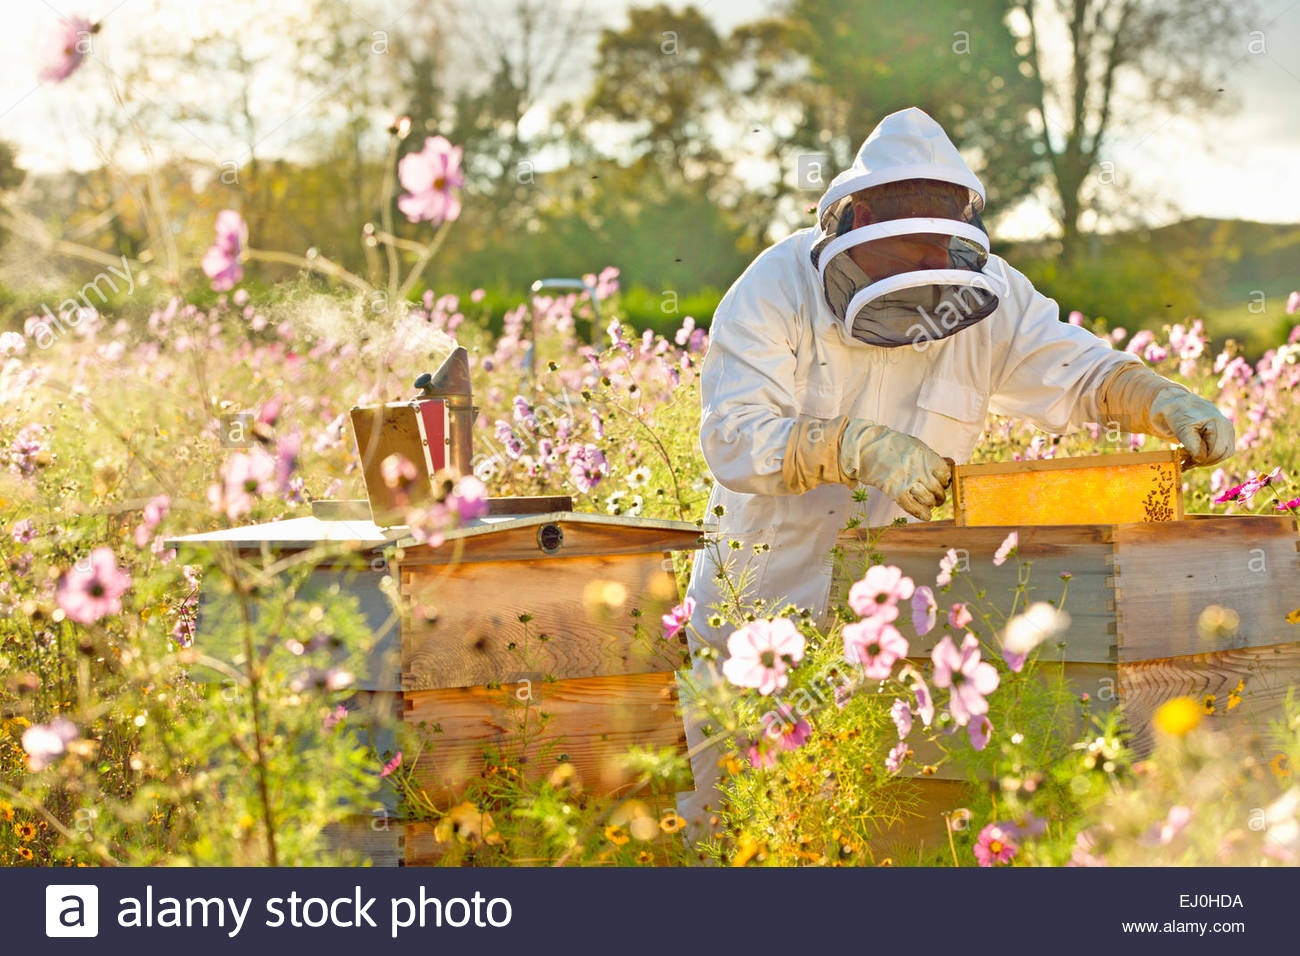 Beekeeper removing frame from beehive in field full of flowers - Stock Image